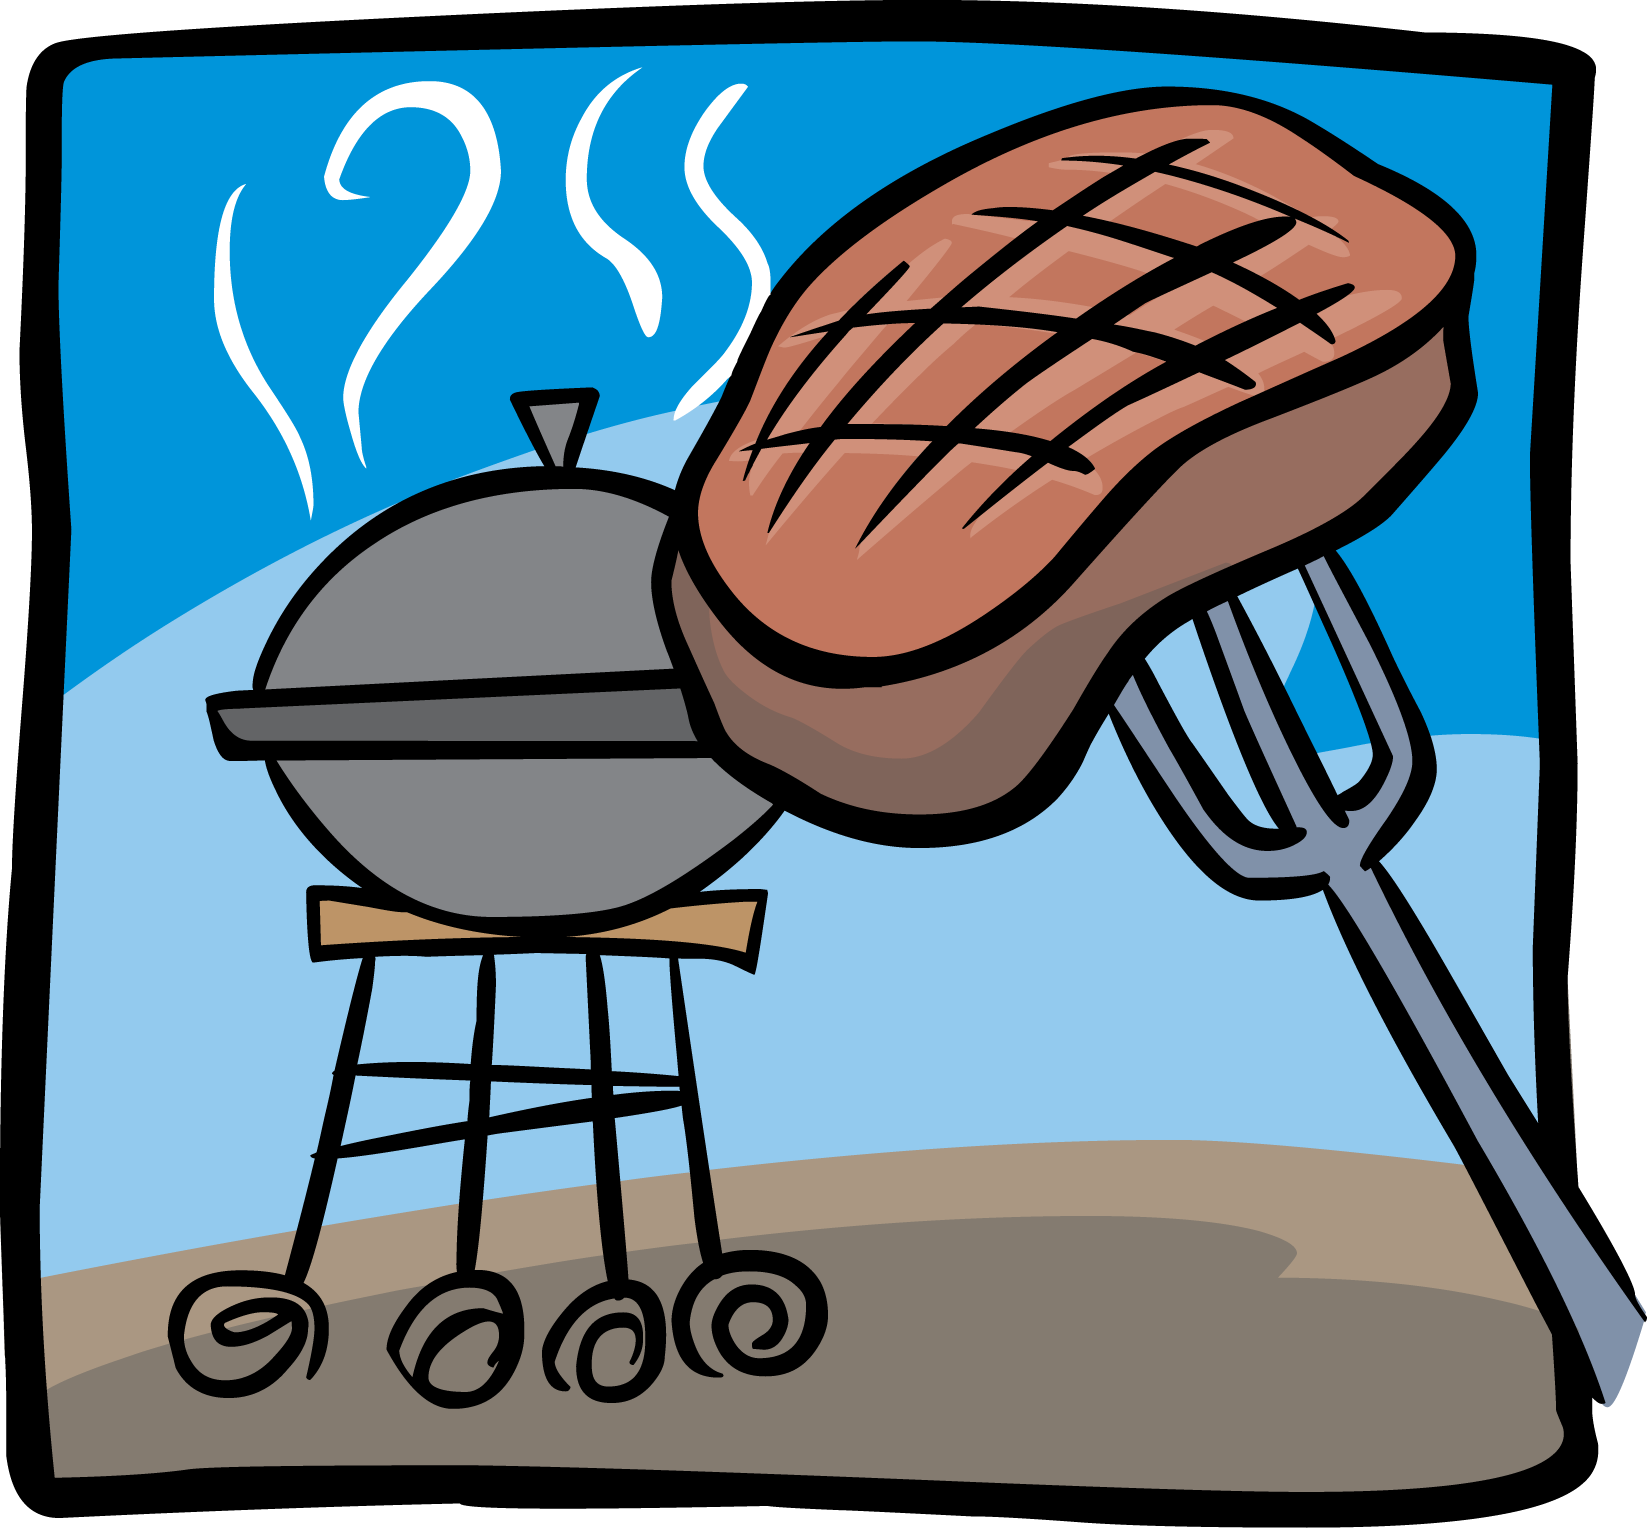 Bbq Funny Pics Free Cliparts That You Can Download To You Computer